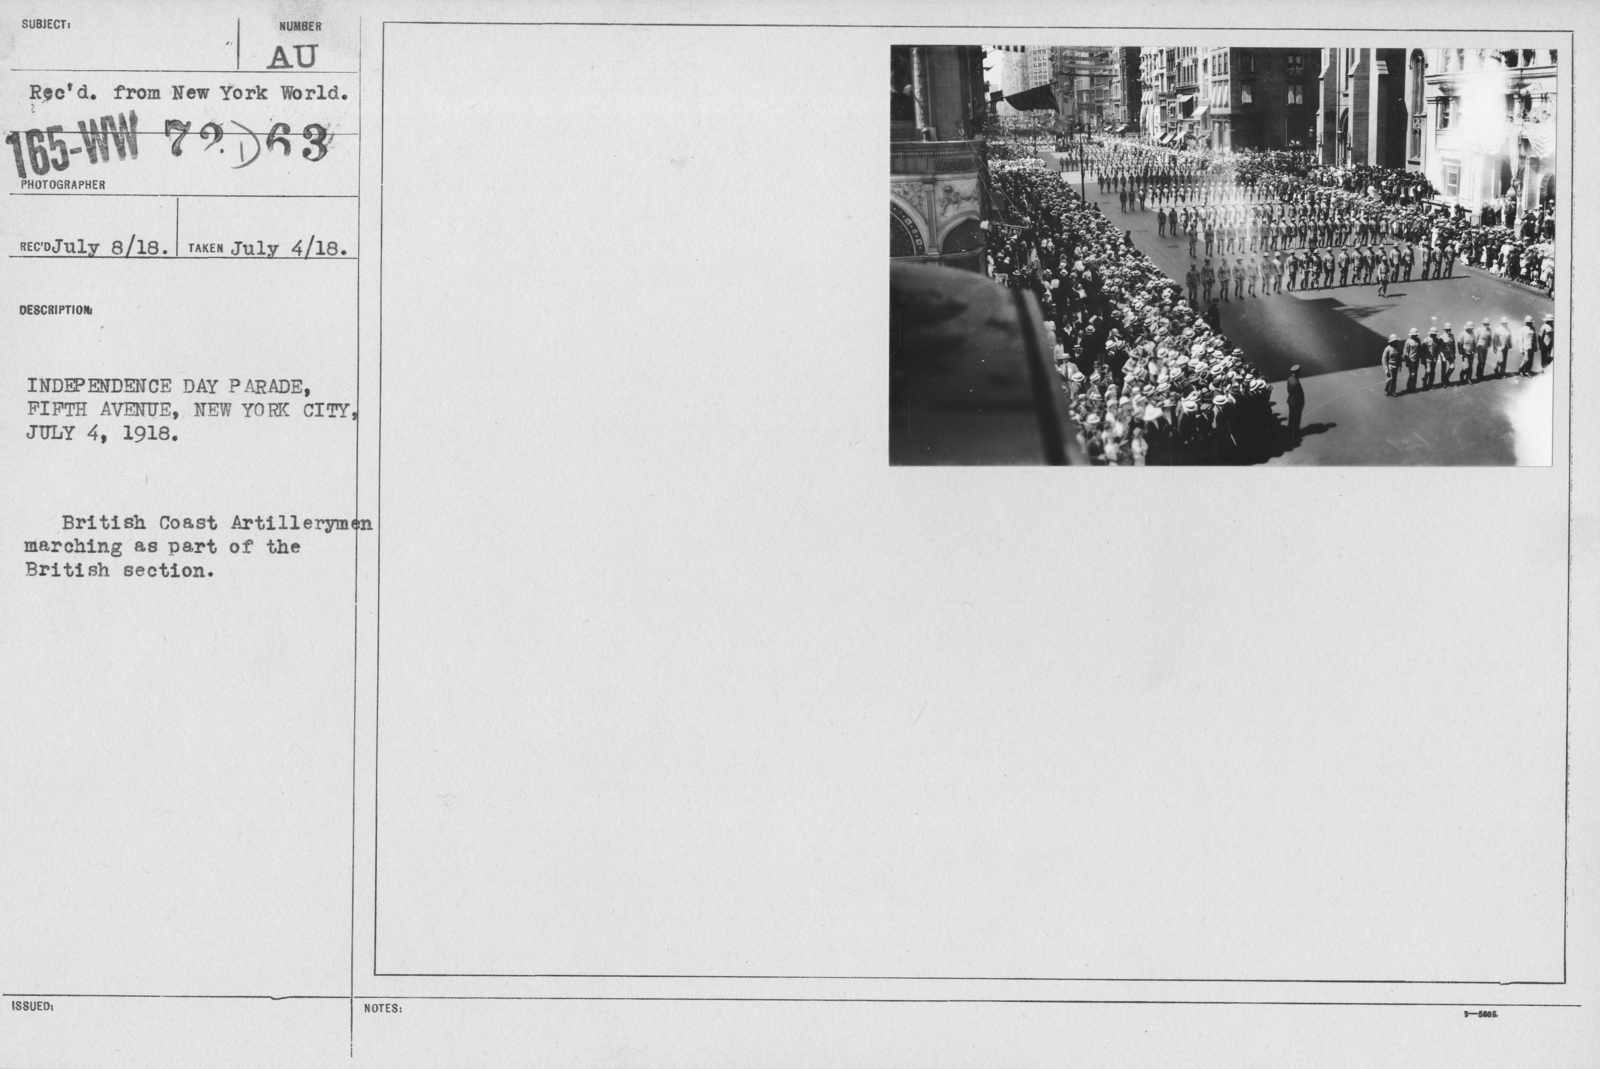 Ceremonies - Independence Day, 1918 - Independence Day Parade, Fifth Avenue, New York City, July 4, 1918. British Coast Artillerymen marching as part of the British section